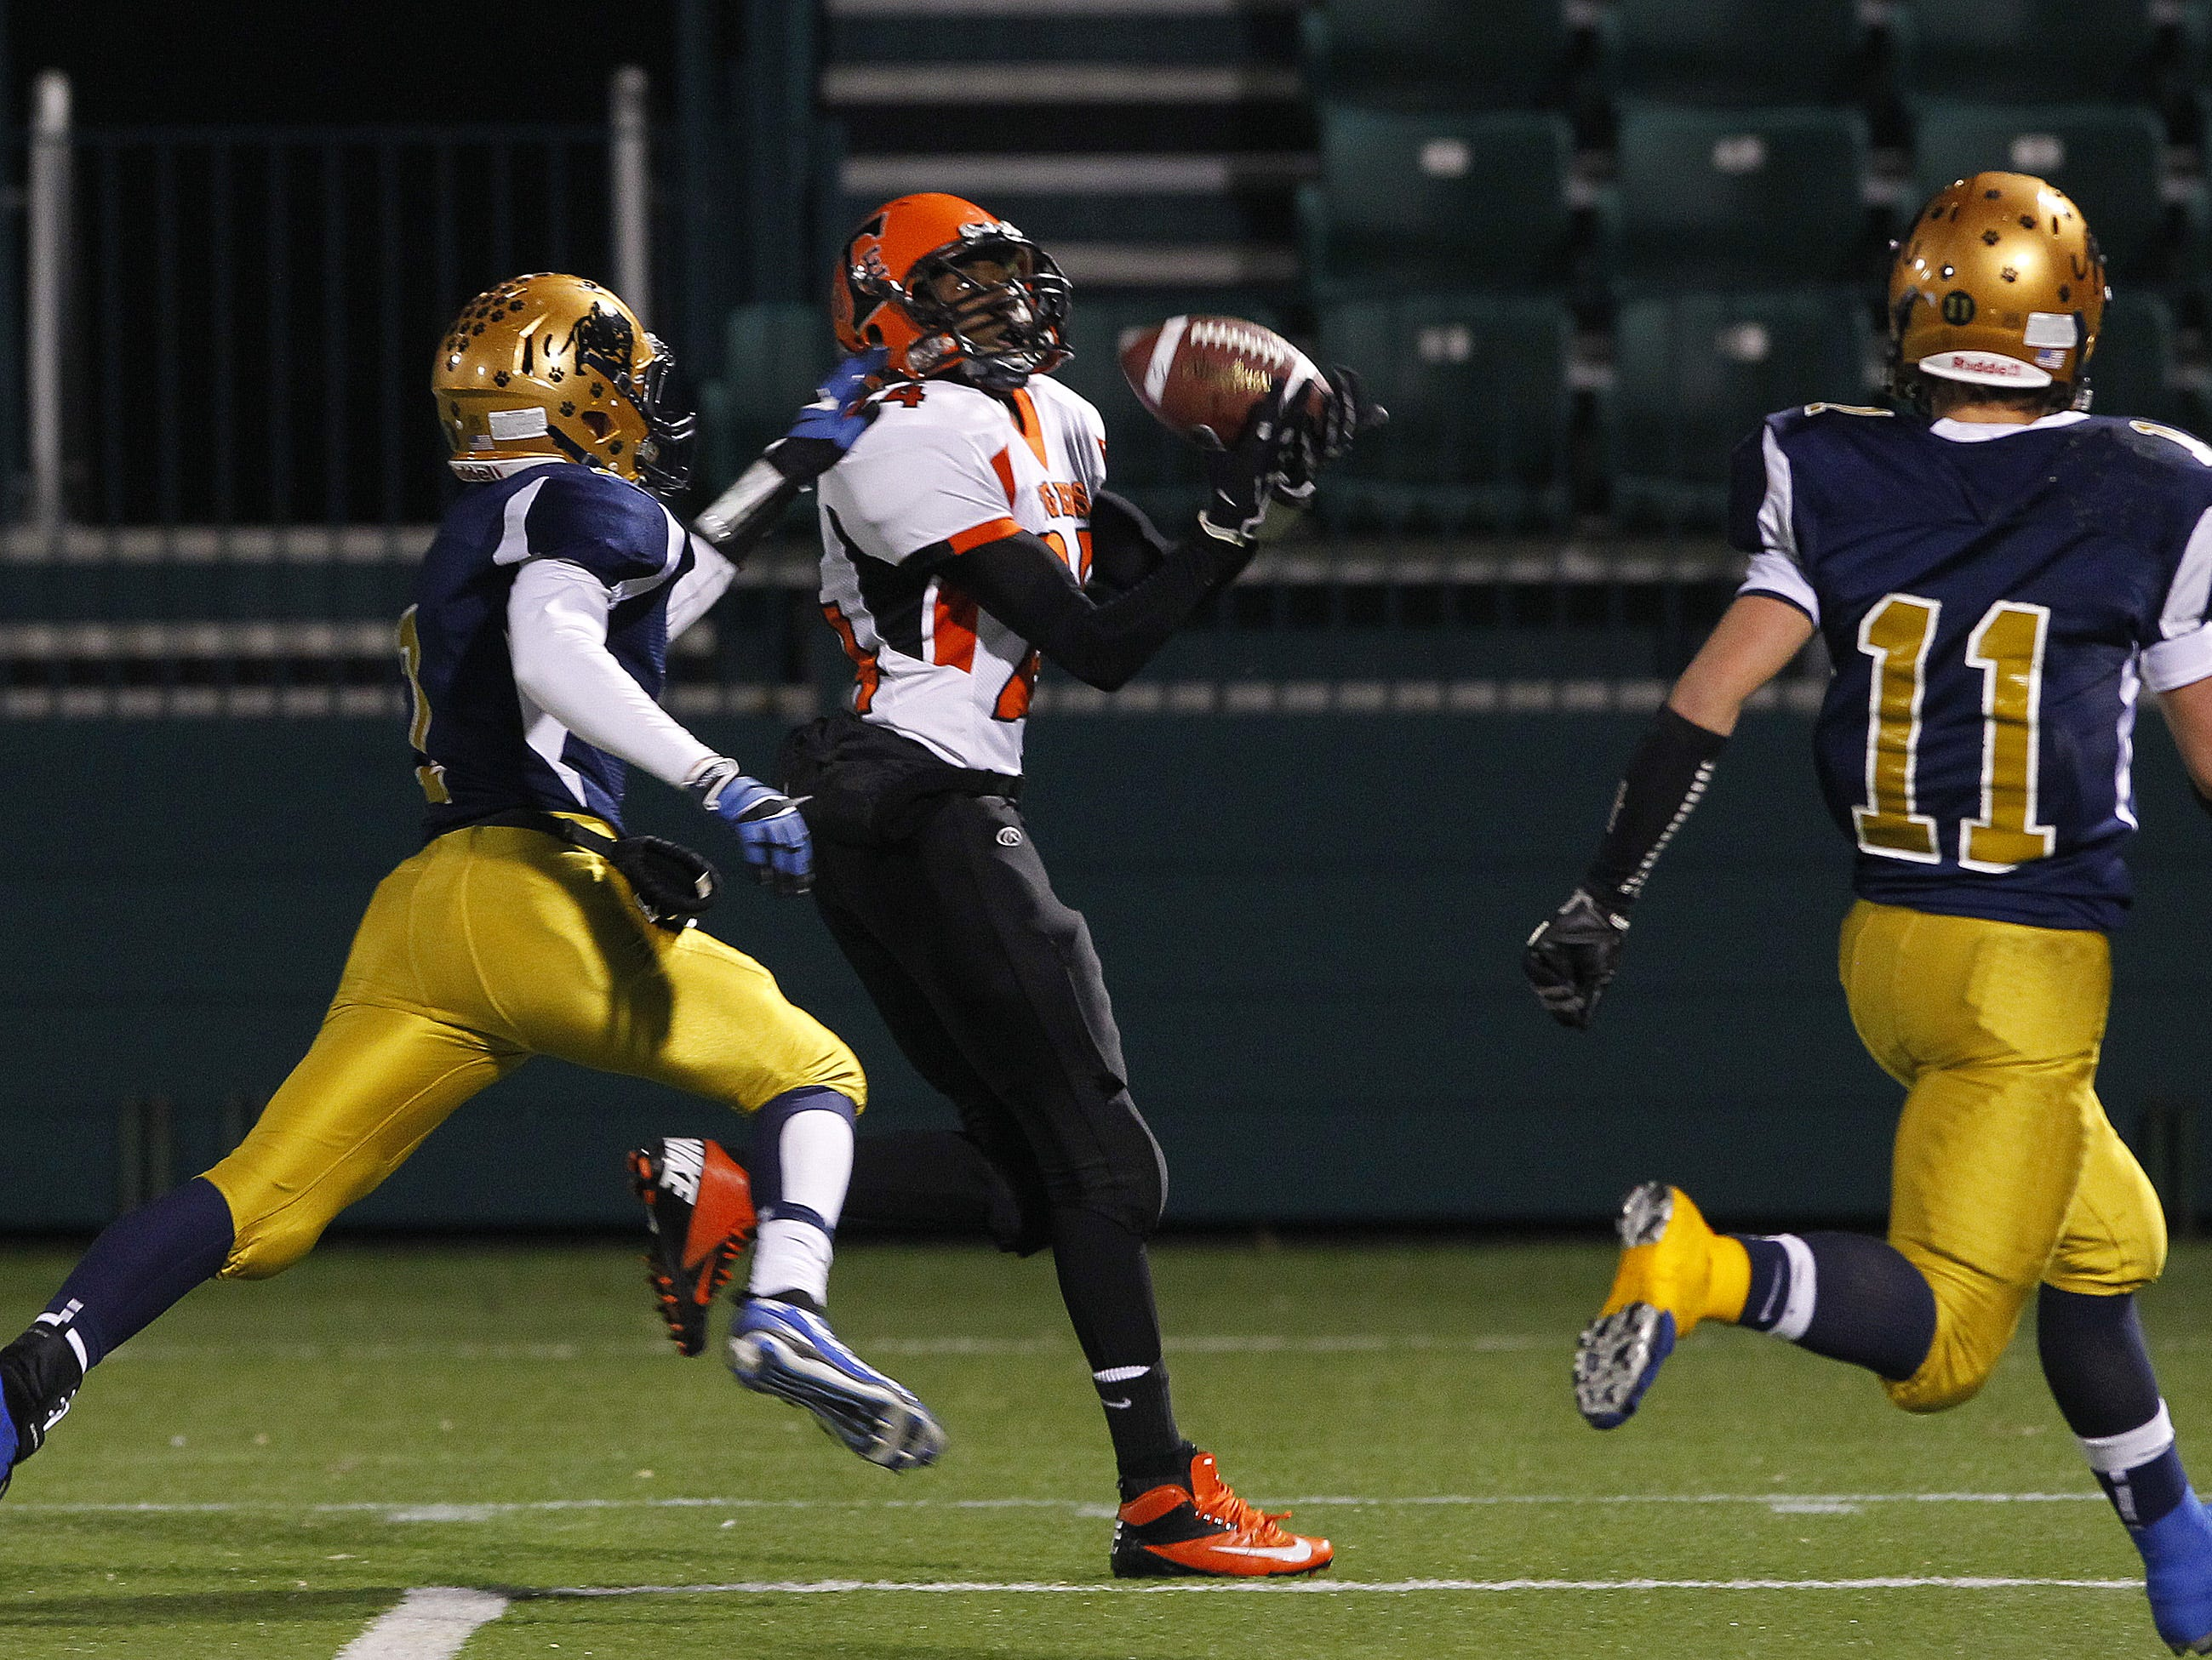 Union-Endicott's Nahjee Miller, center, catches a 31-yard touchdown pass between Sweet Home's Carter Mann, left, and Ethan Reger during NYS Class A semifinal playoff football action football action at Sahlen's Stadium in Rochester Friday evening, November 16, 2012.